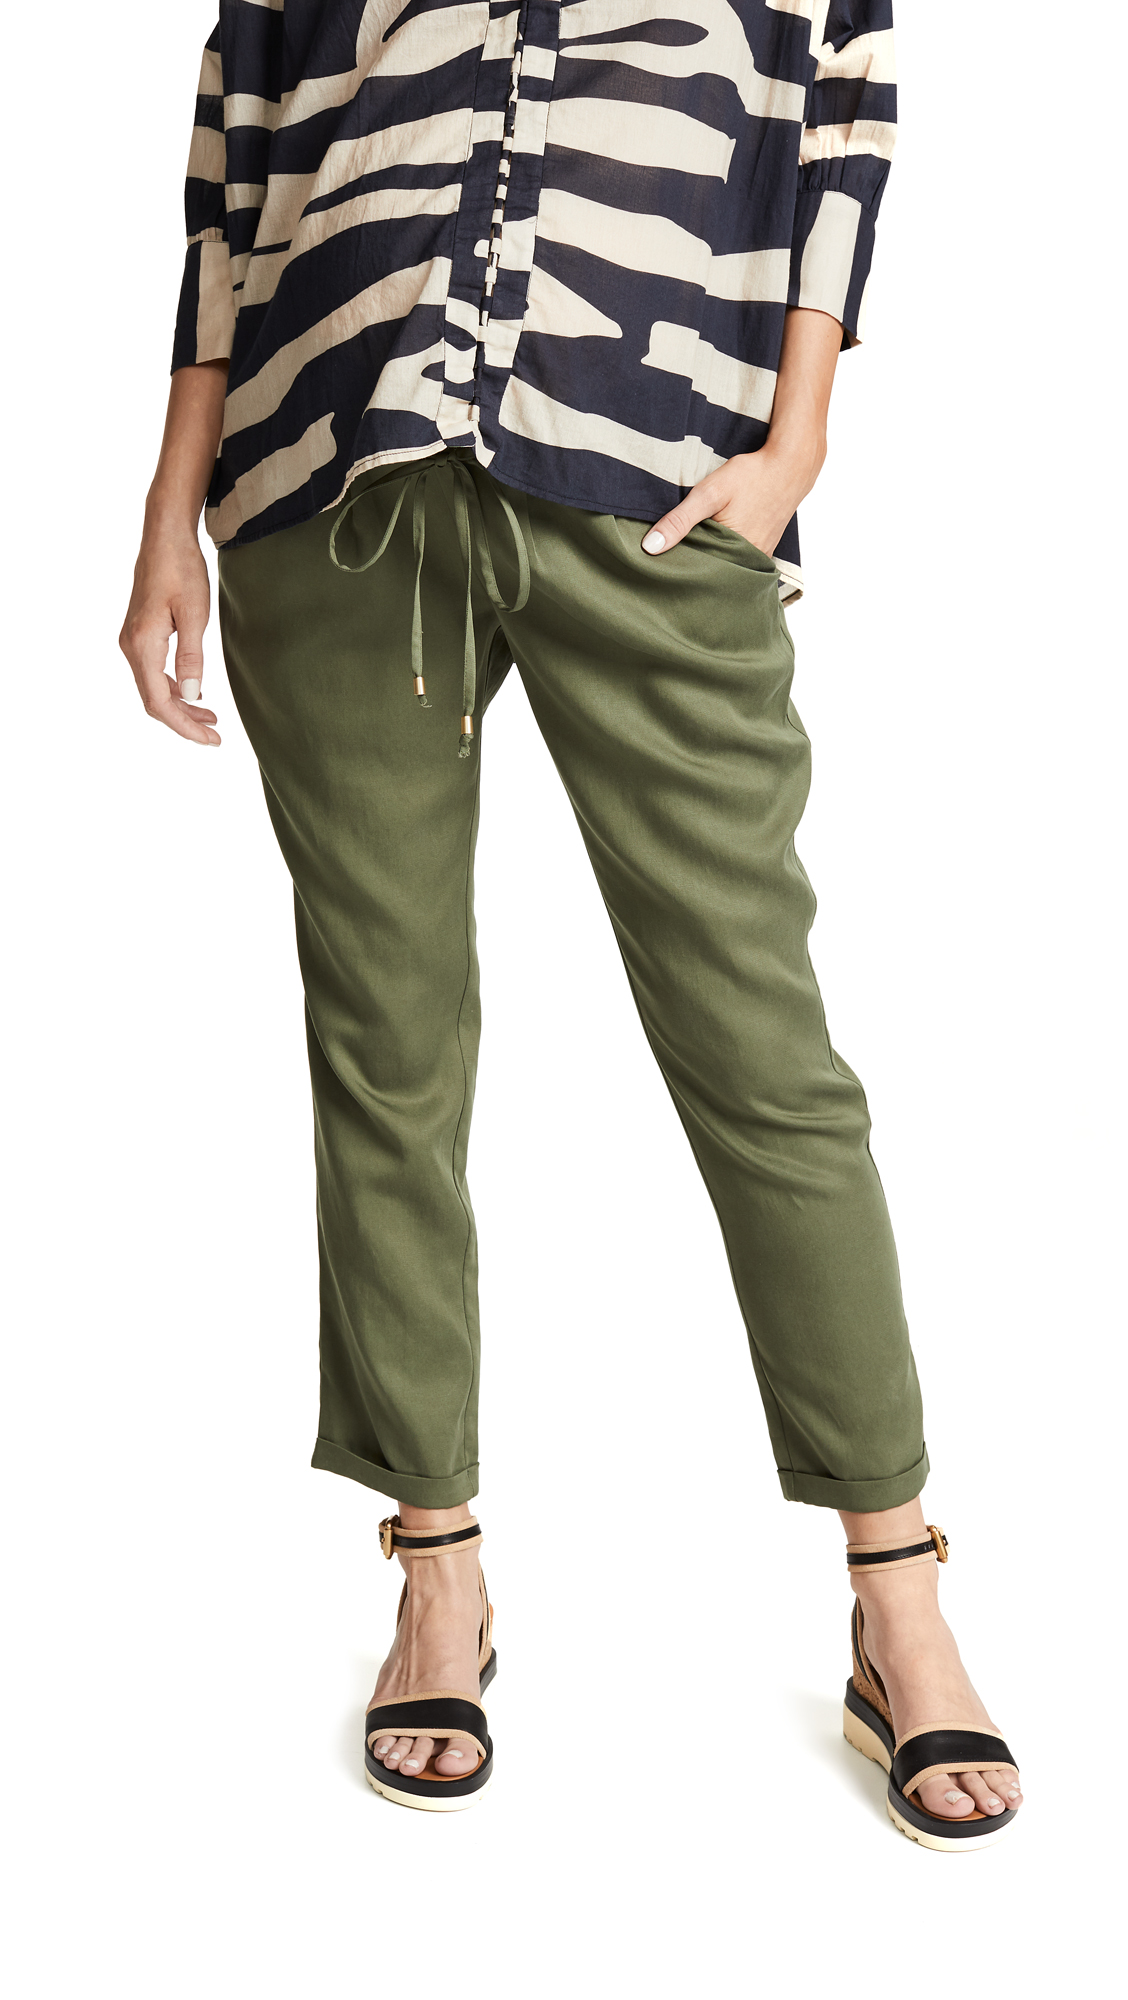 Tapered Ankle Maternity Pants